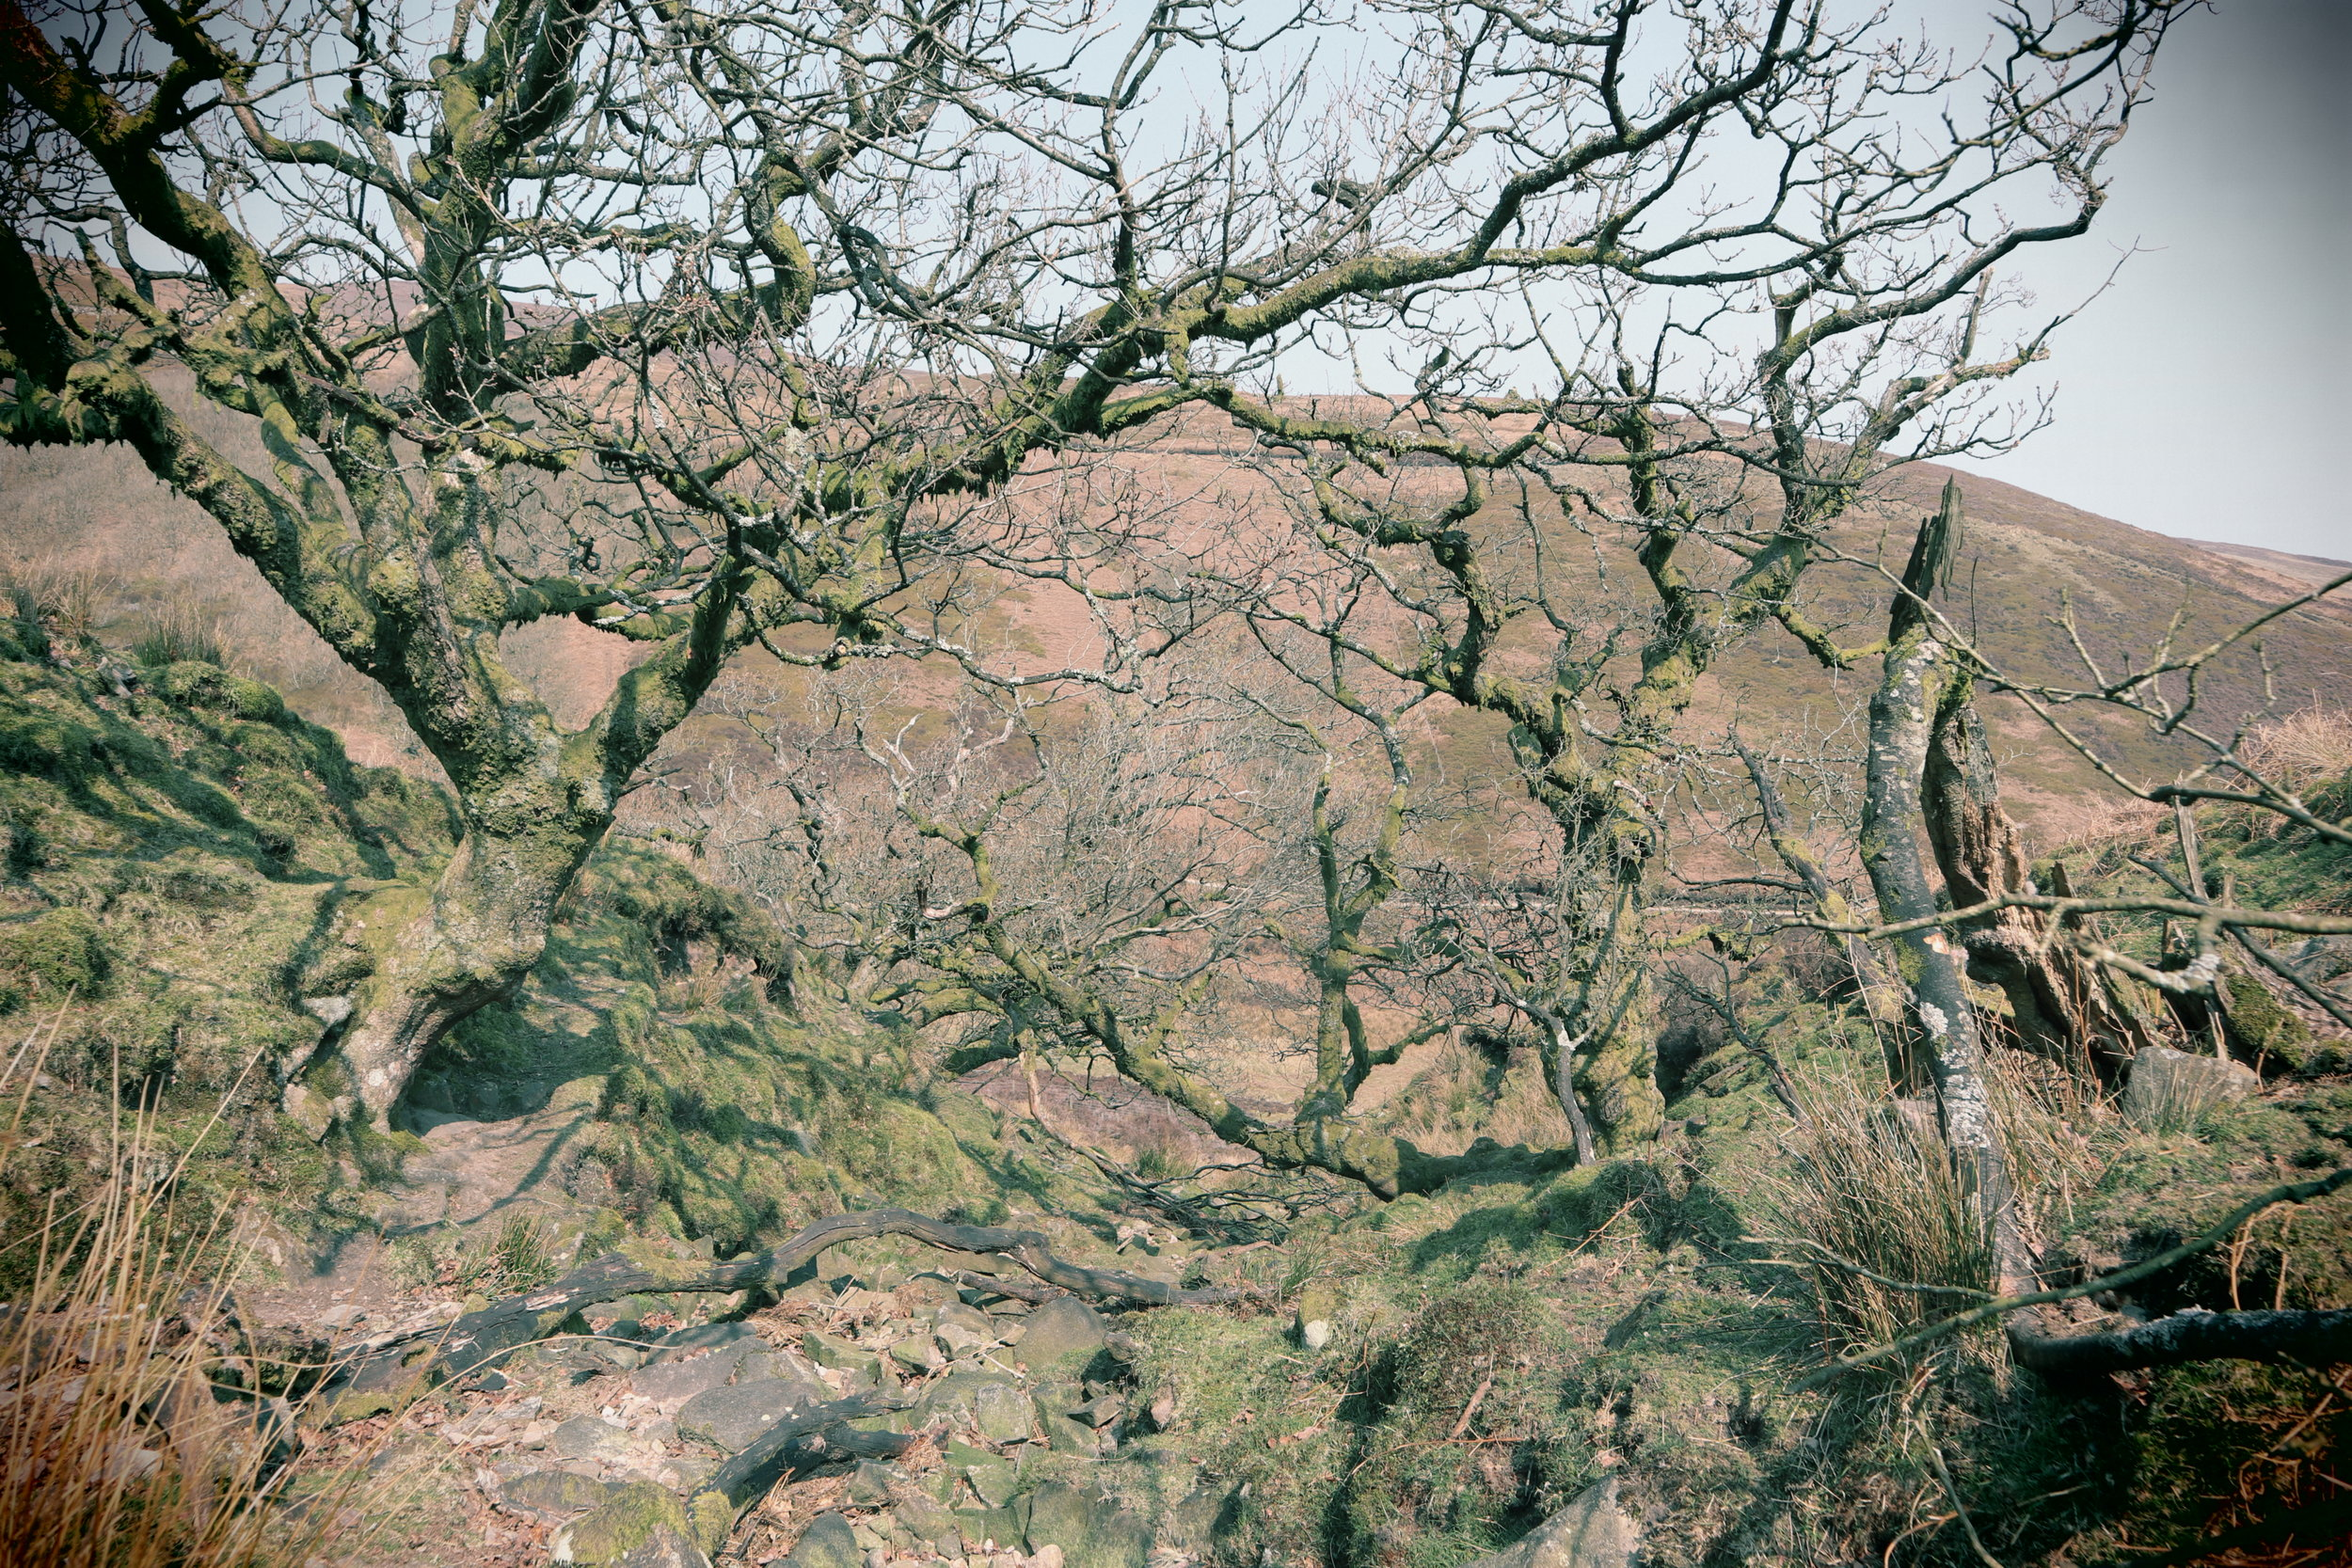 A view of the 'Forest' of Bowland